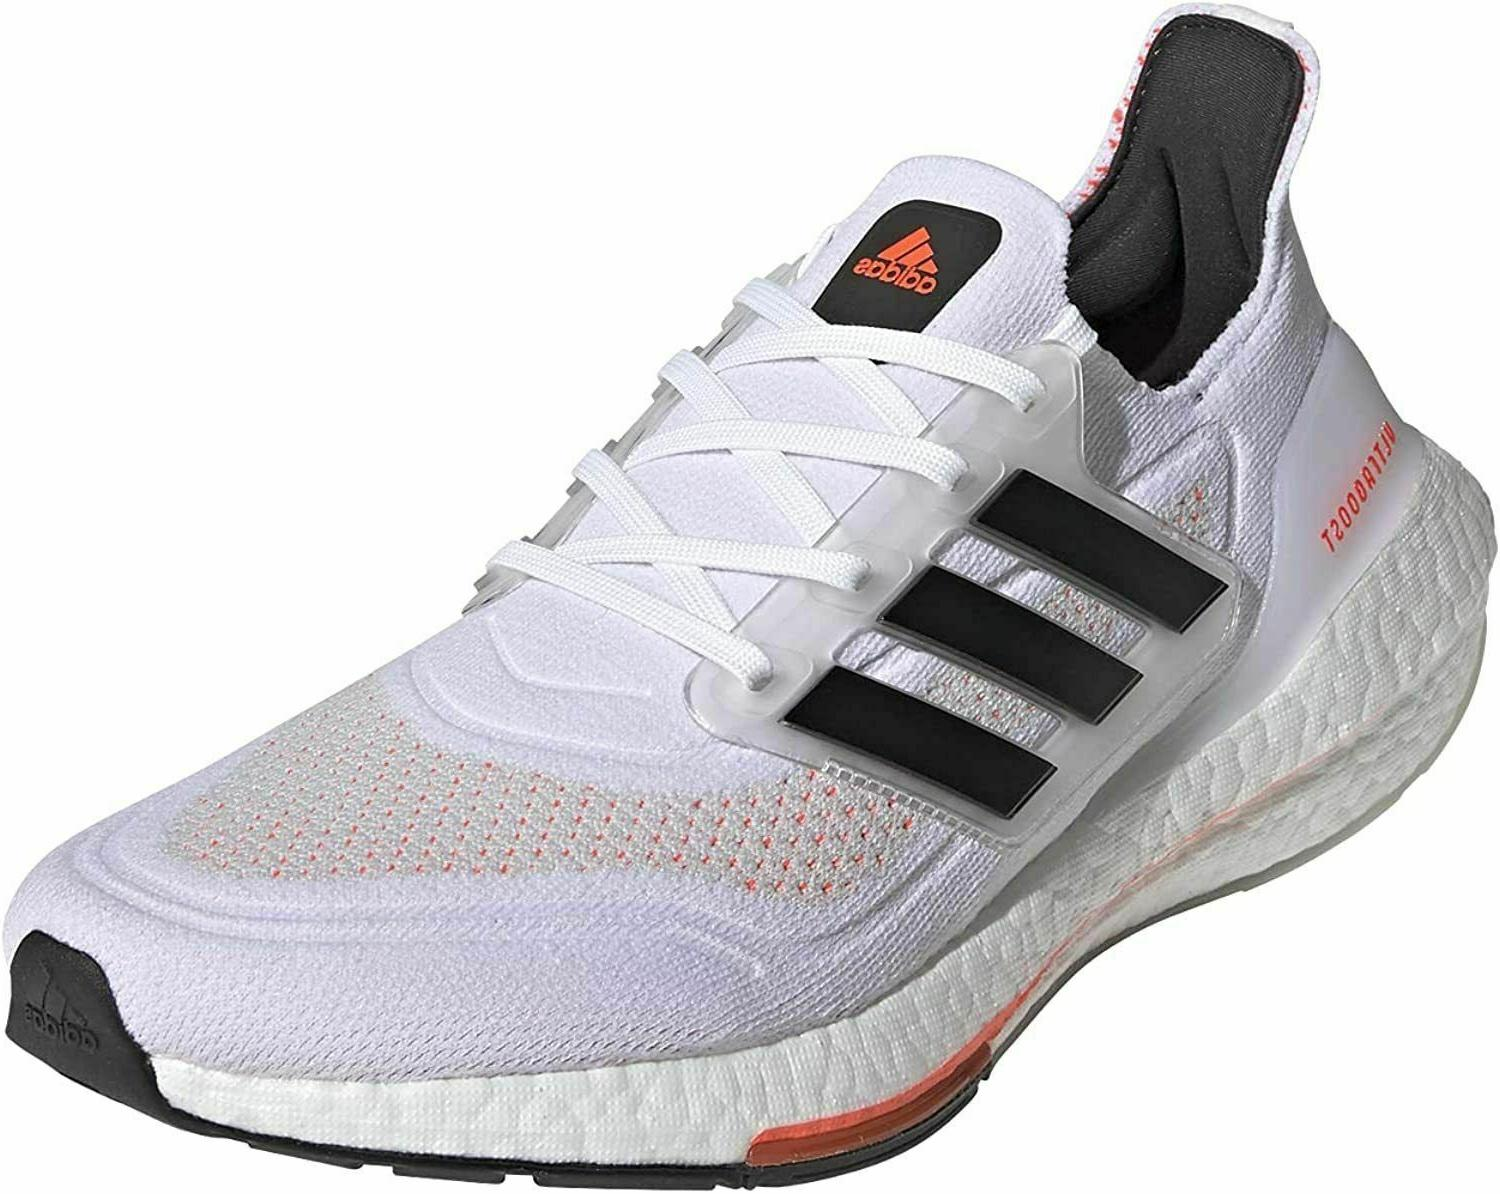 Adidas Ultra Shoes 2021 S23863